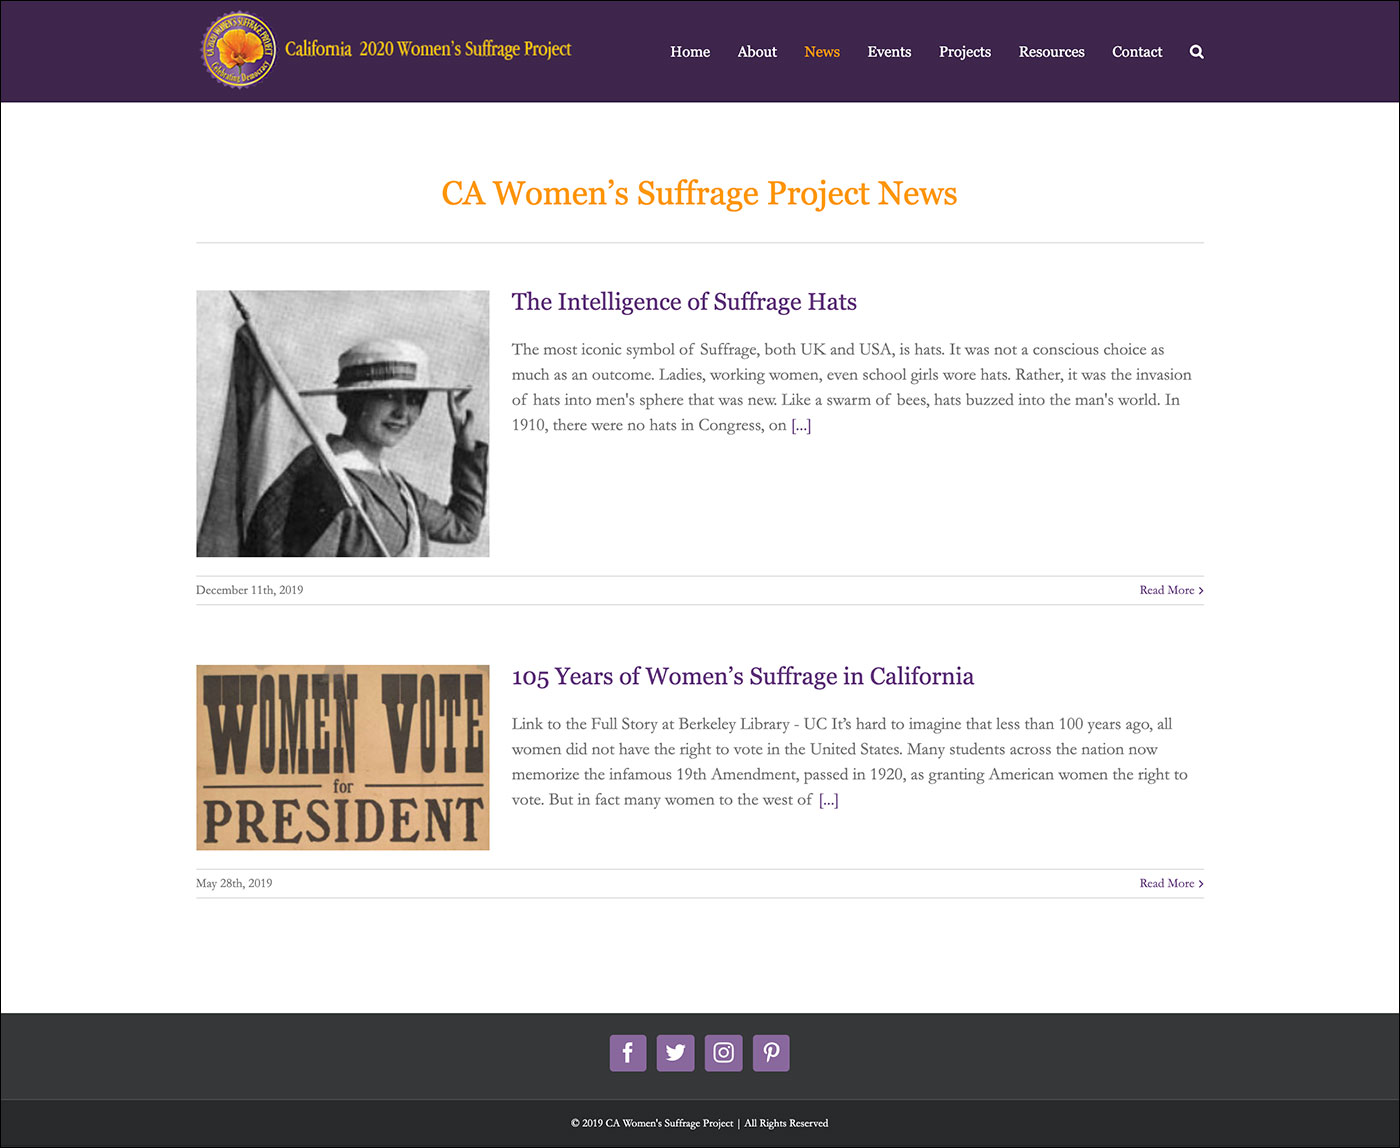 California Women's Suffrage Project News